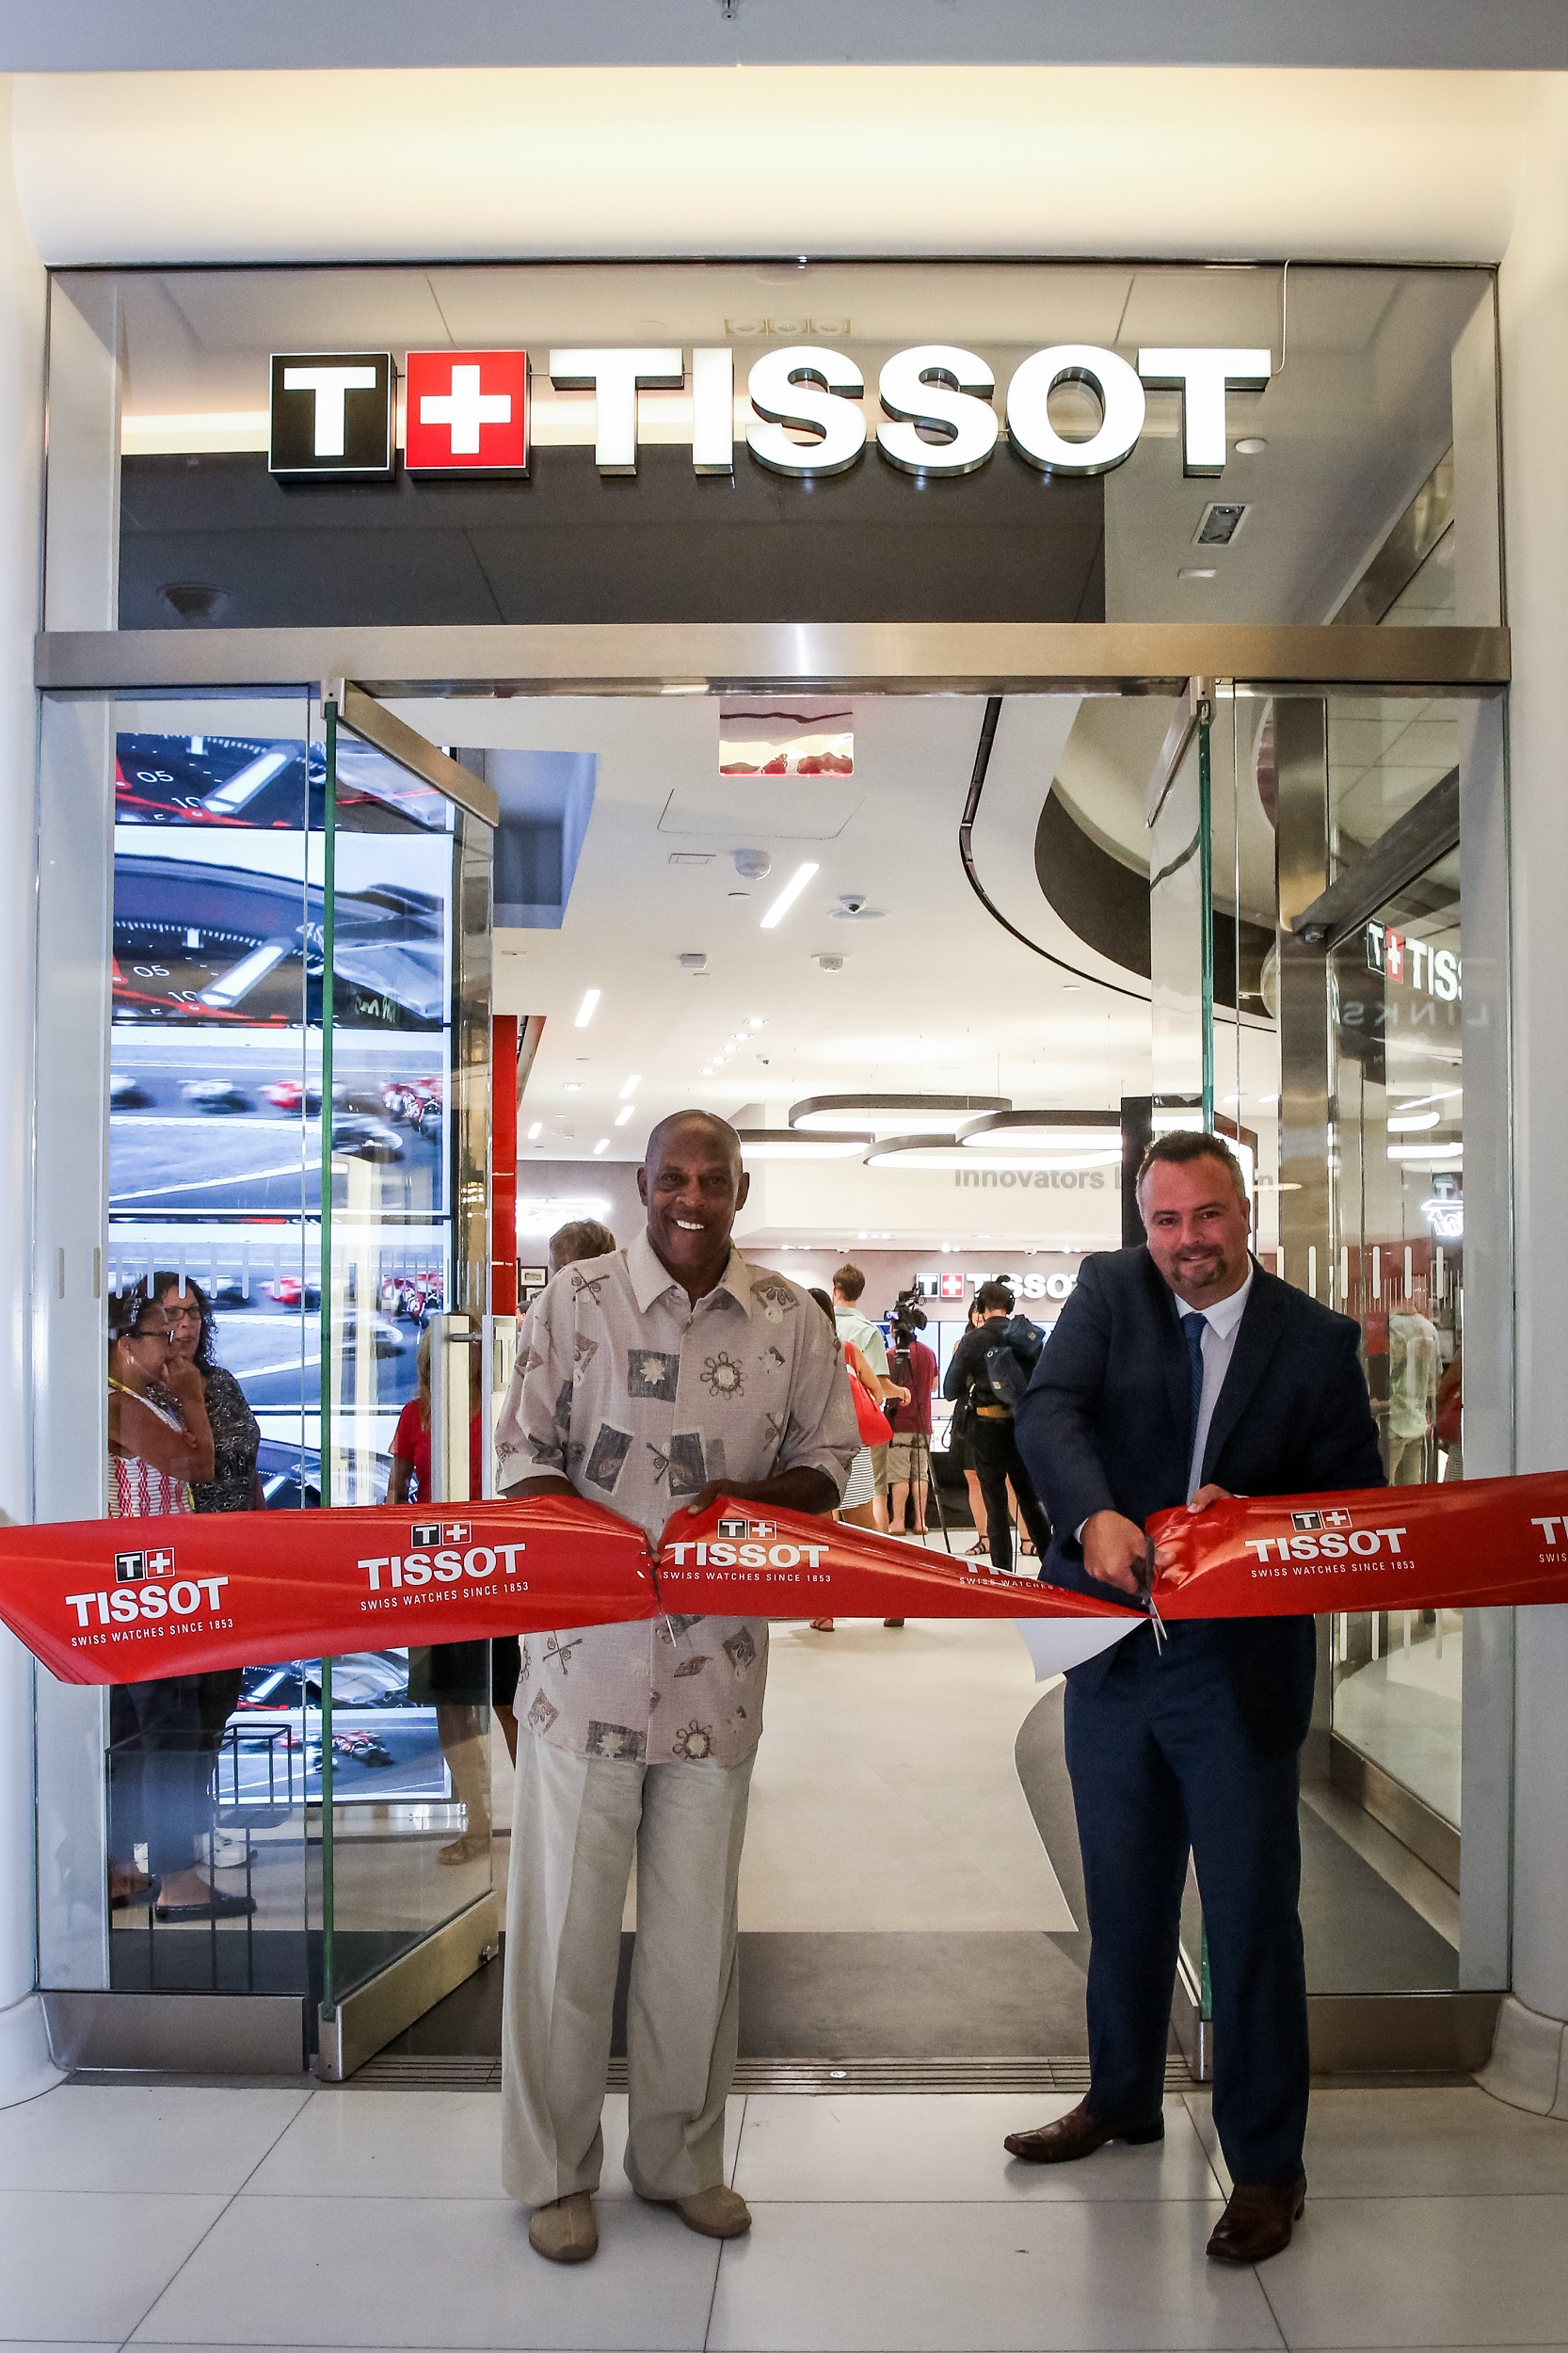 tissot_boutique_westfield_tiny_archibald_justin_thompson